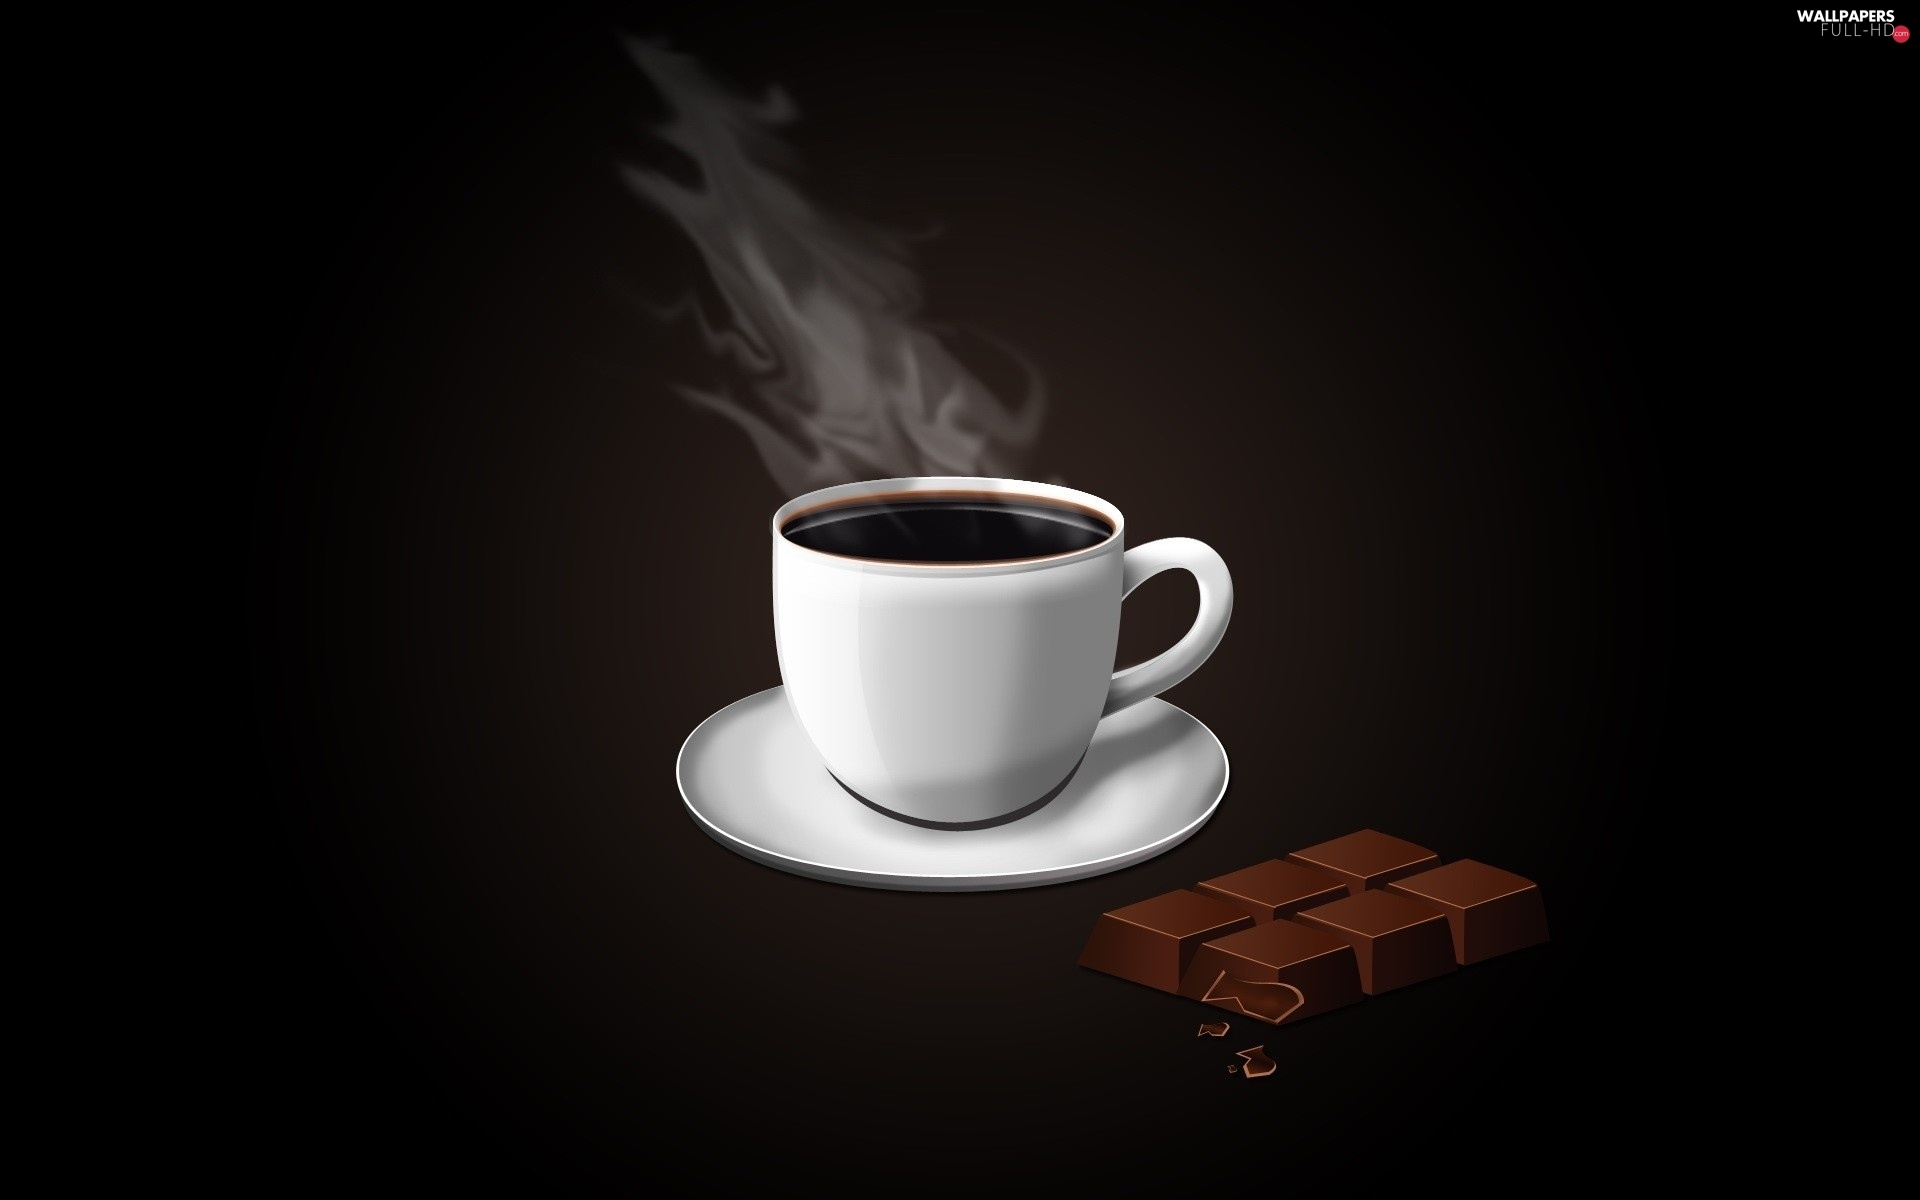 chocolate, coffee, cup, hot